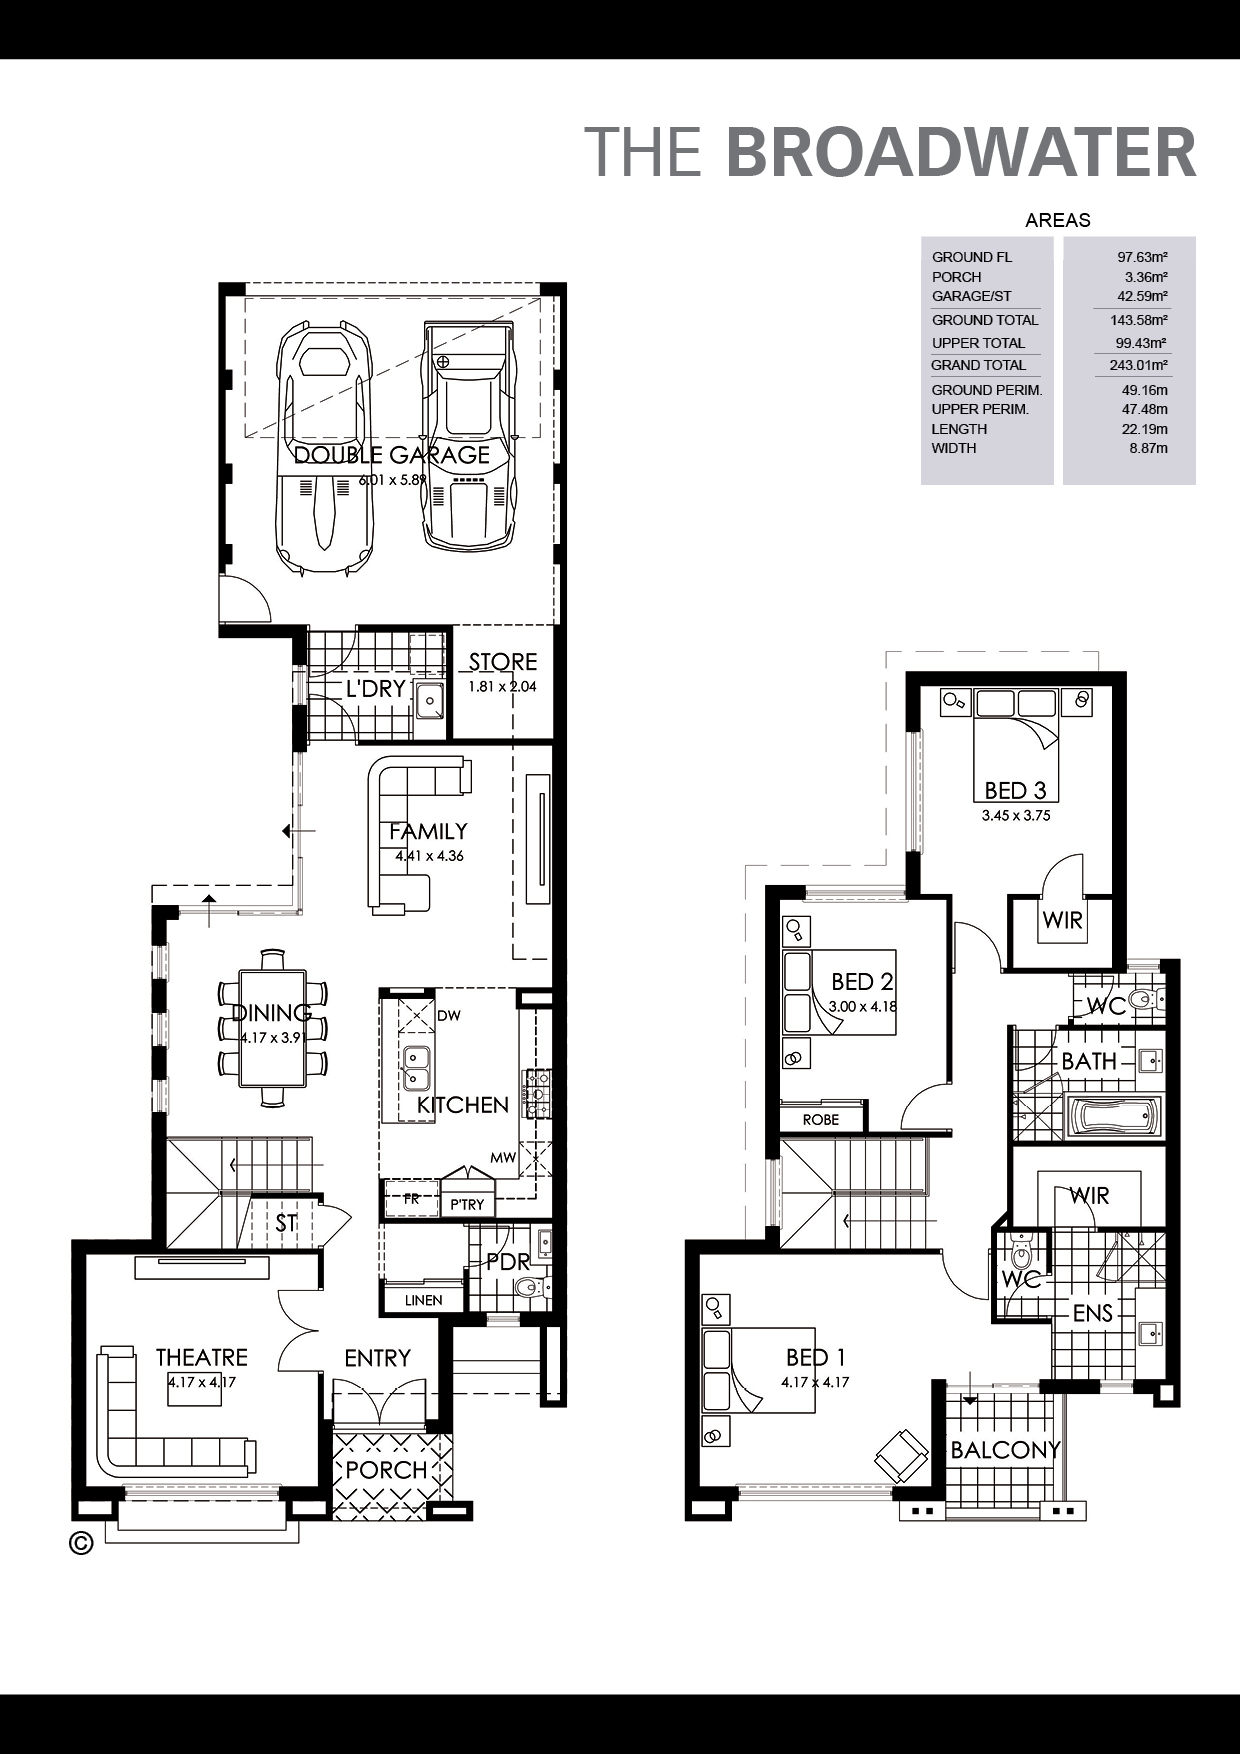 The Broadwater Floorplan